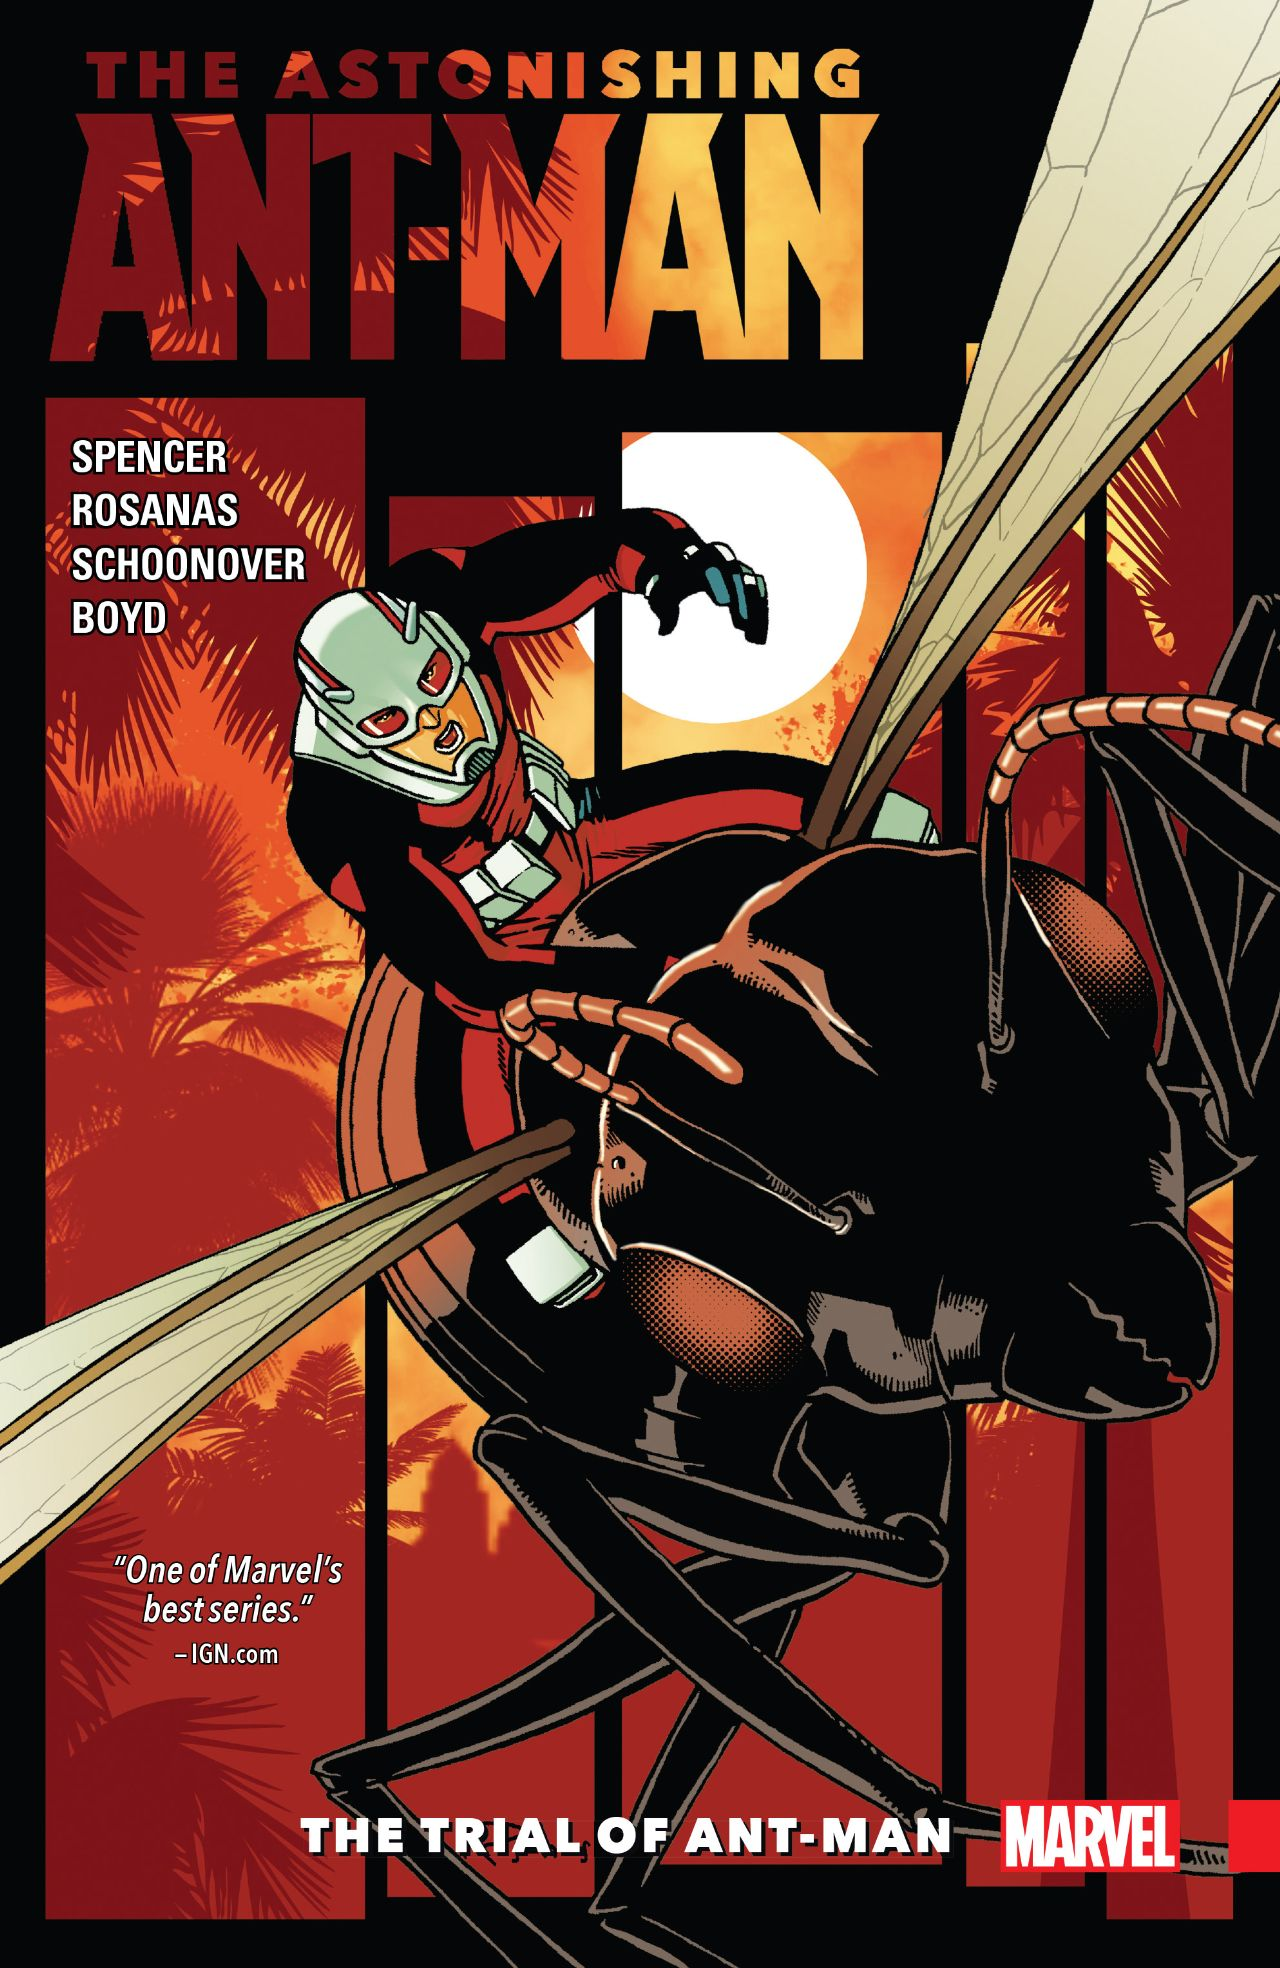 The Astonishing Ant-Man Vol. 3: The Trial of Ant-Man Review